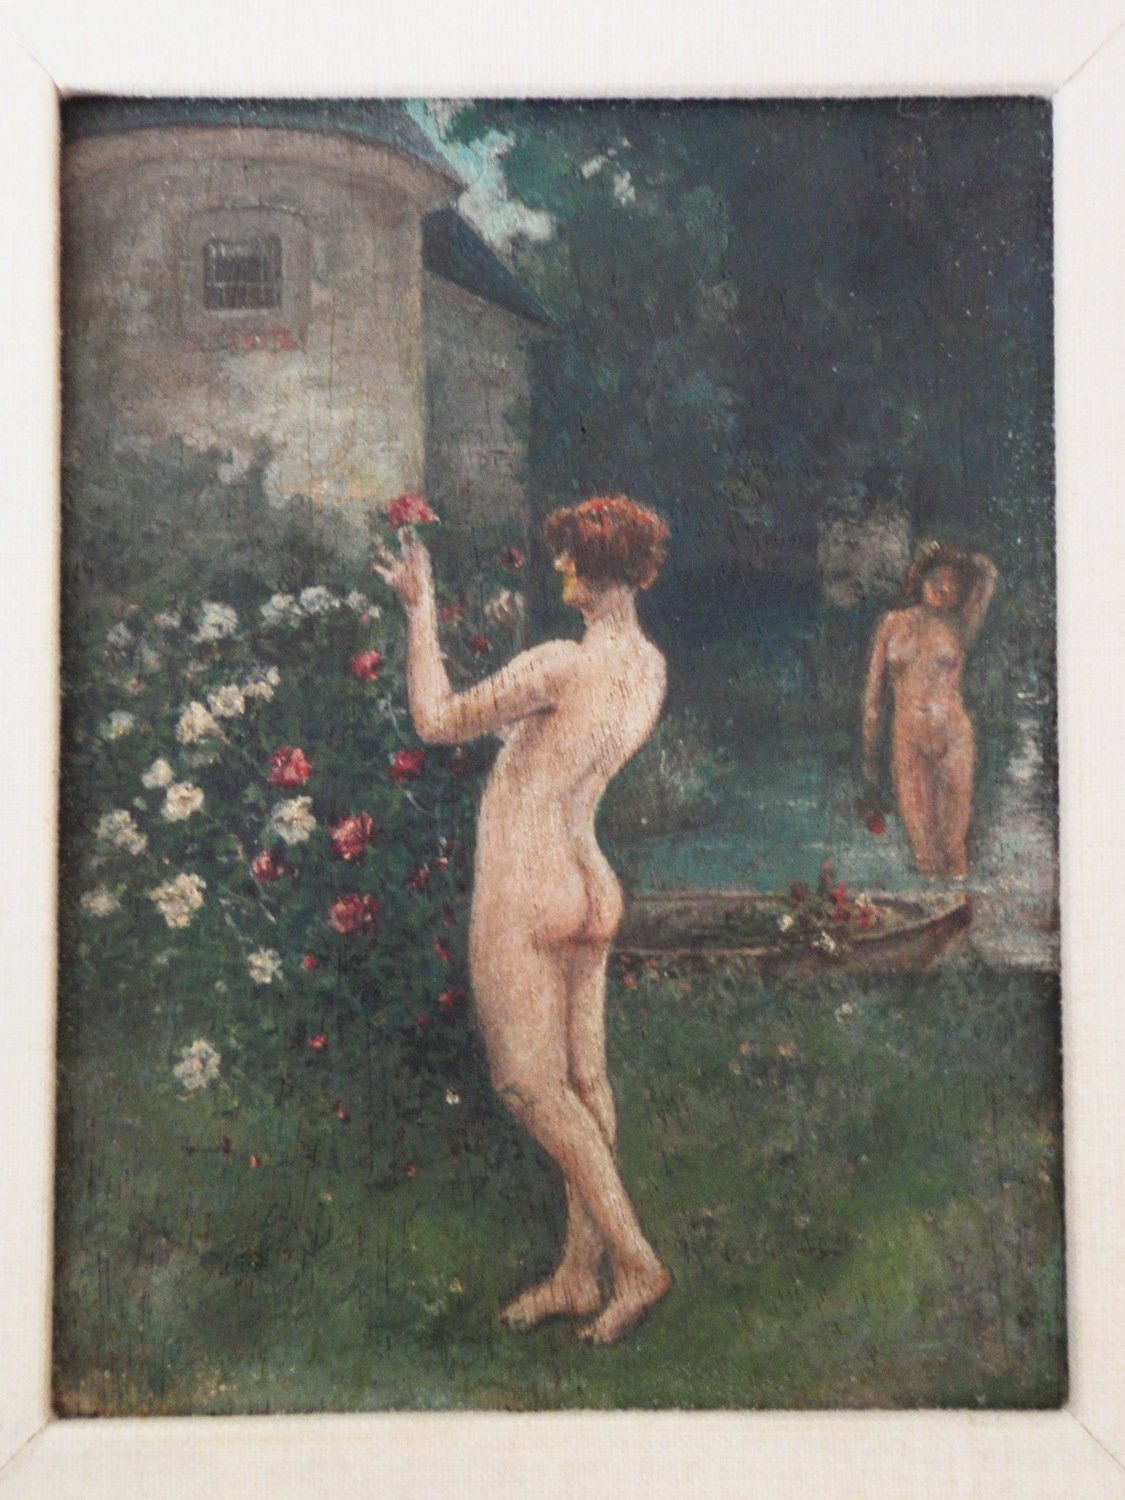 1920s Art Deco Nude Women Framed Oil Painting Naked Flappers in English Garden